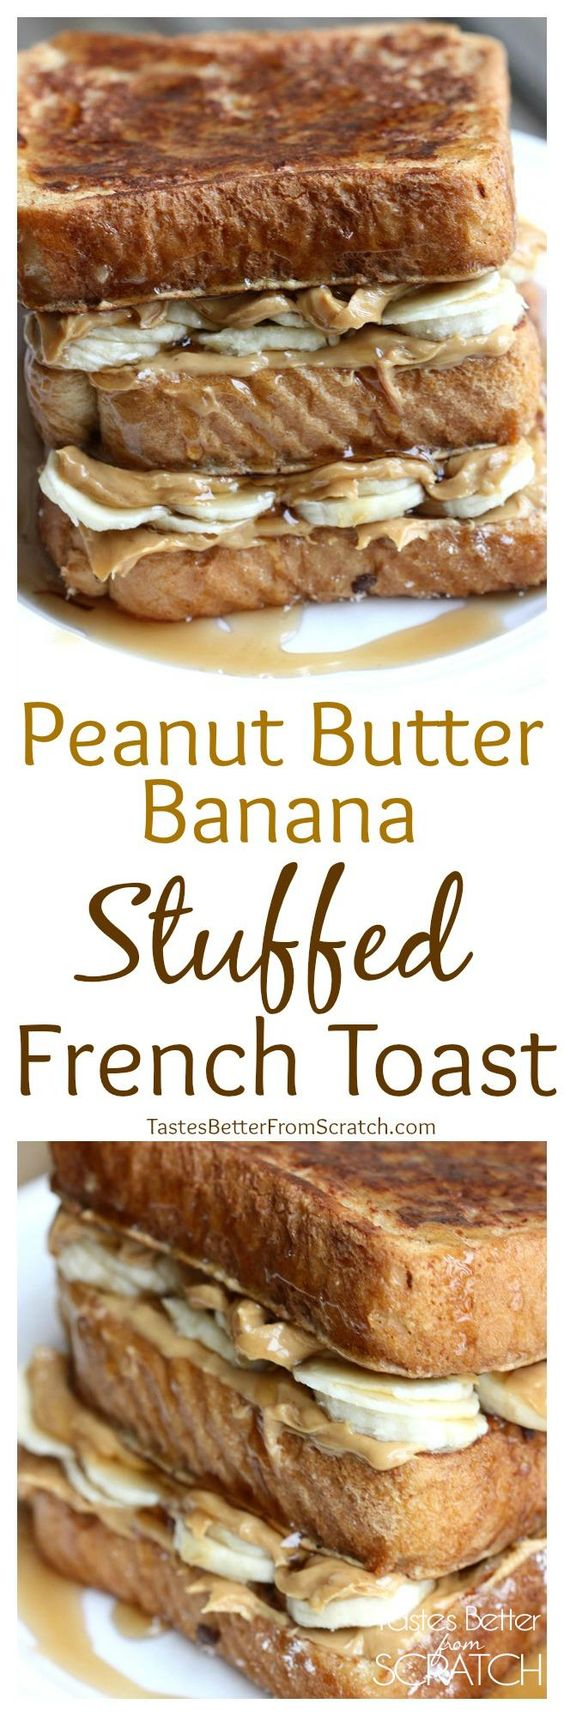 butter banana french toast toast peanut butter peanuts french butter ...